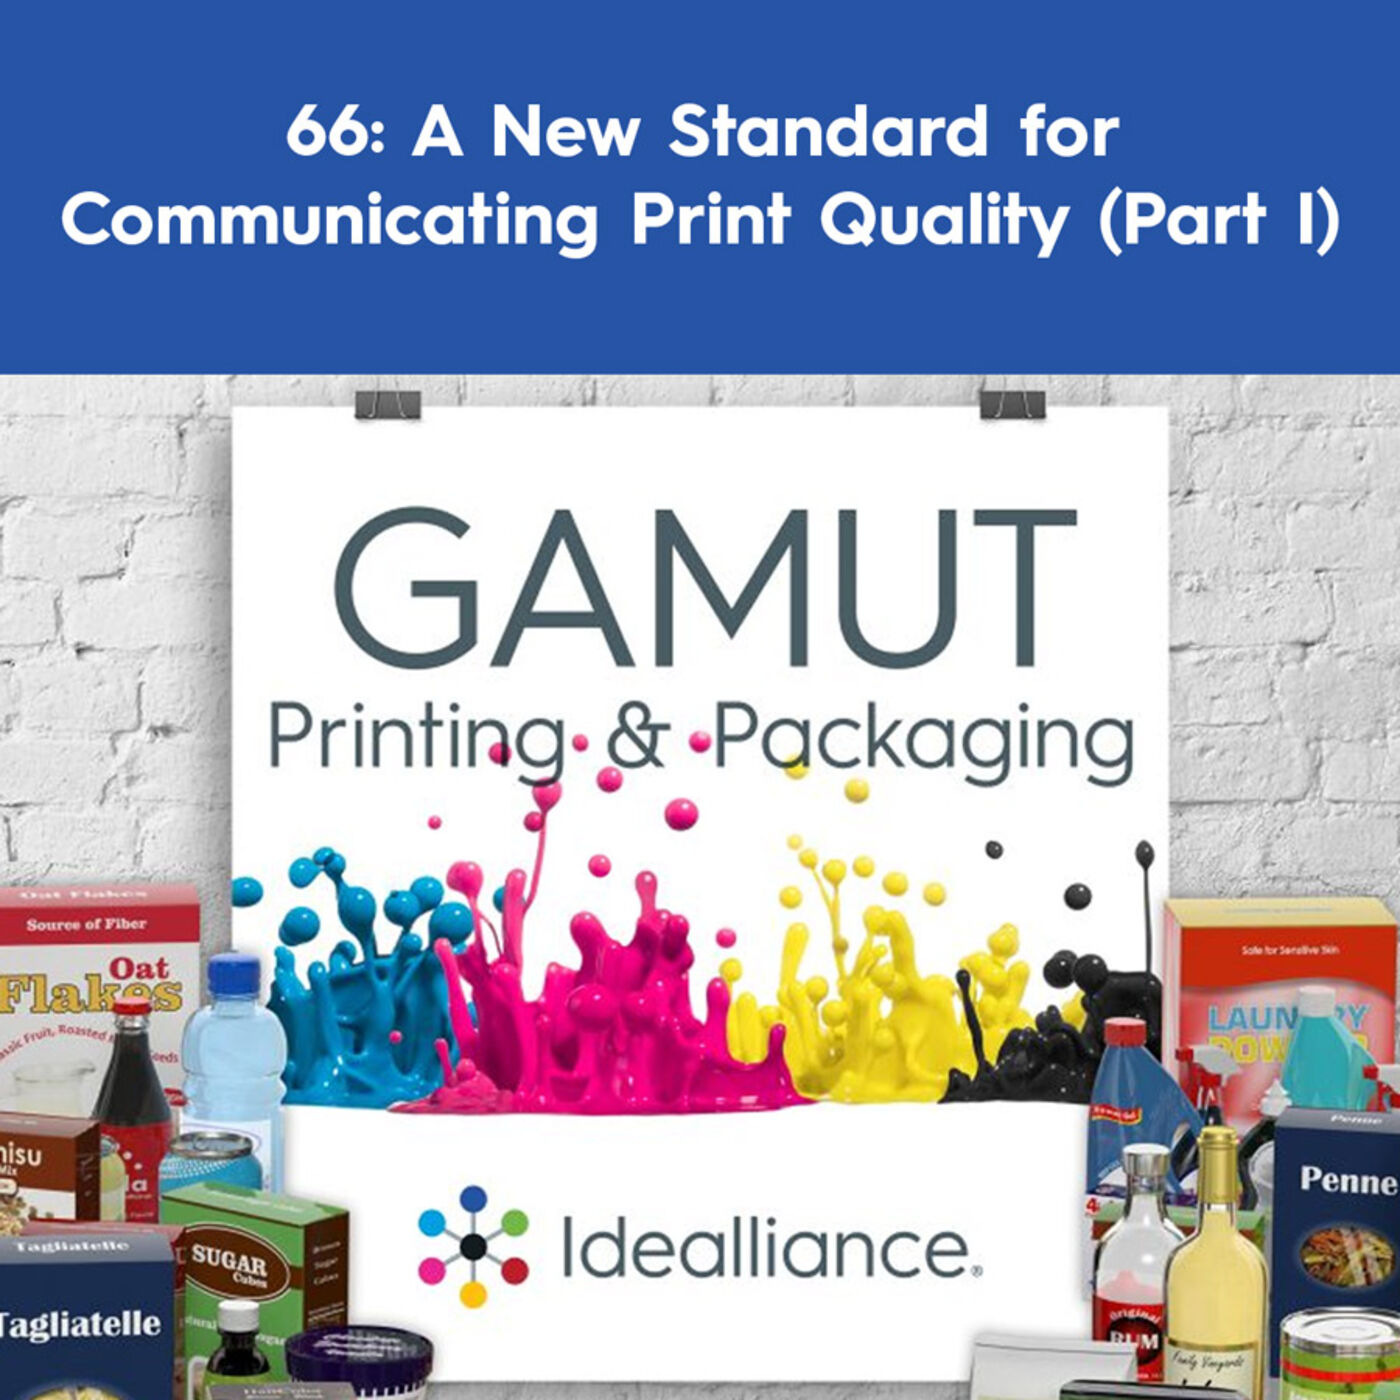 66: A New Standard for Communicating Print Quality (Part I)